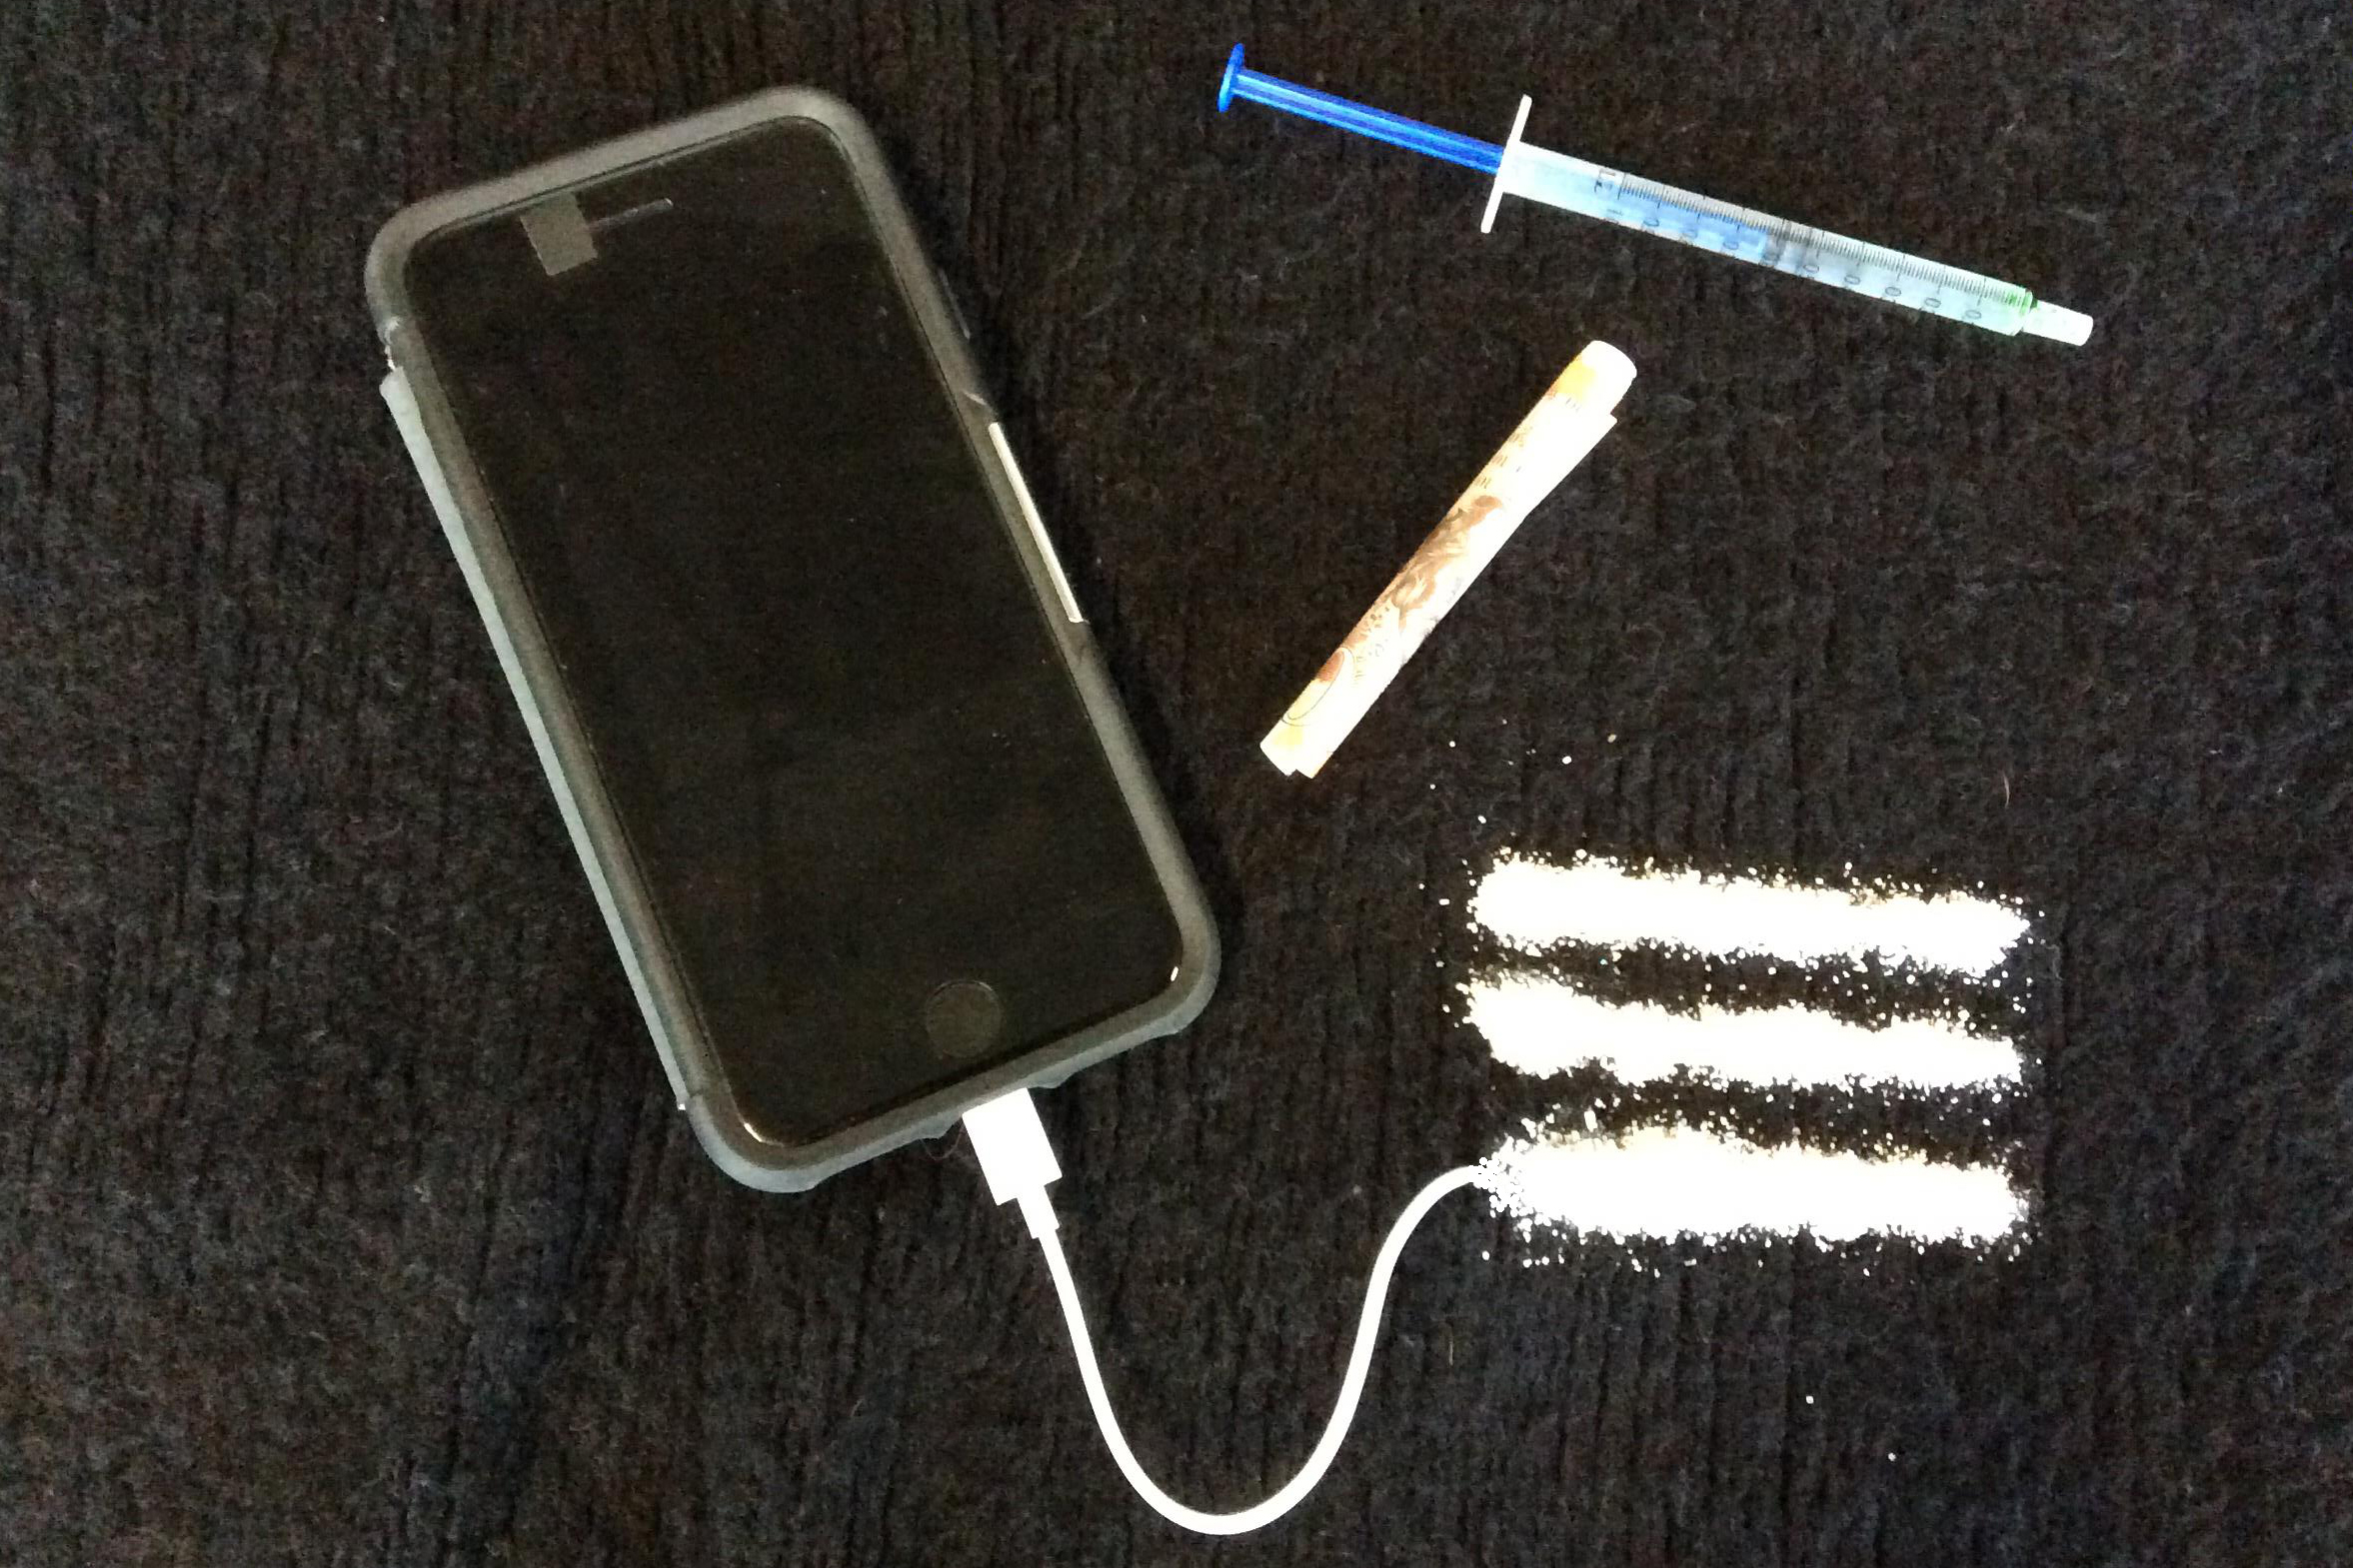 Mock-up illustrating the link between drugs and mobiles